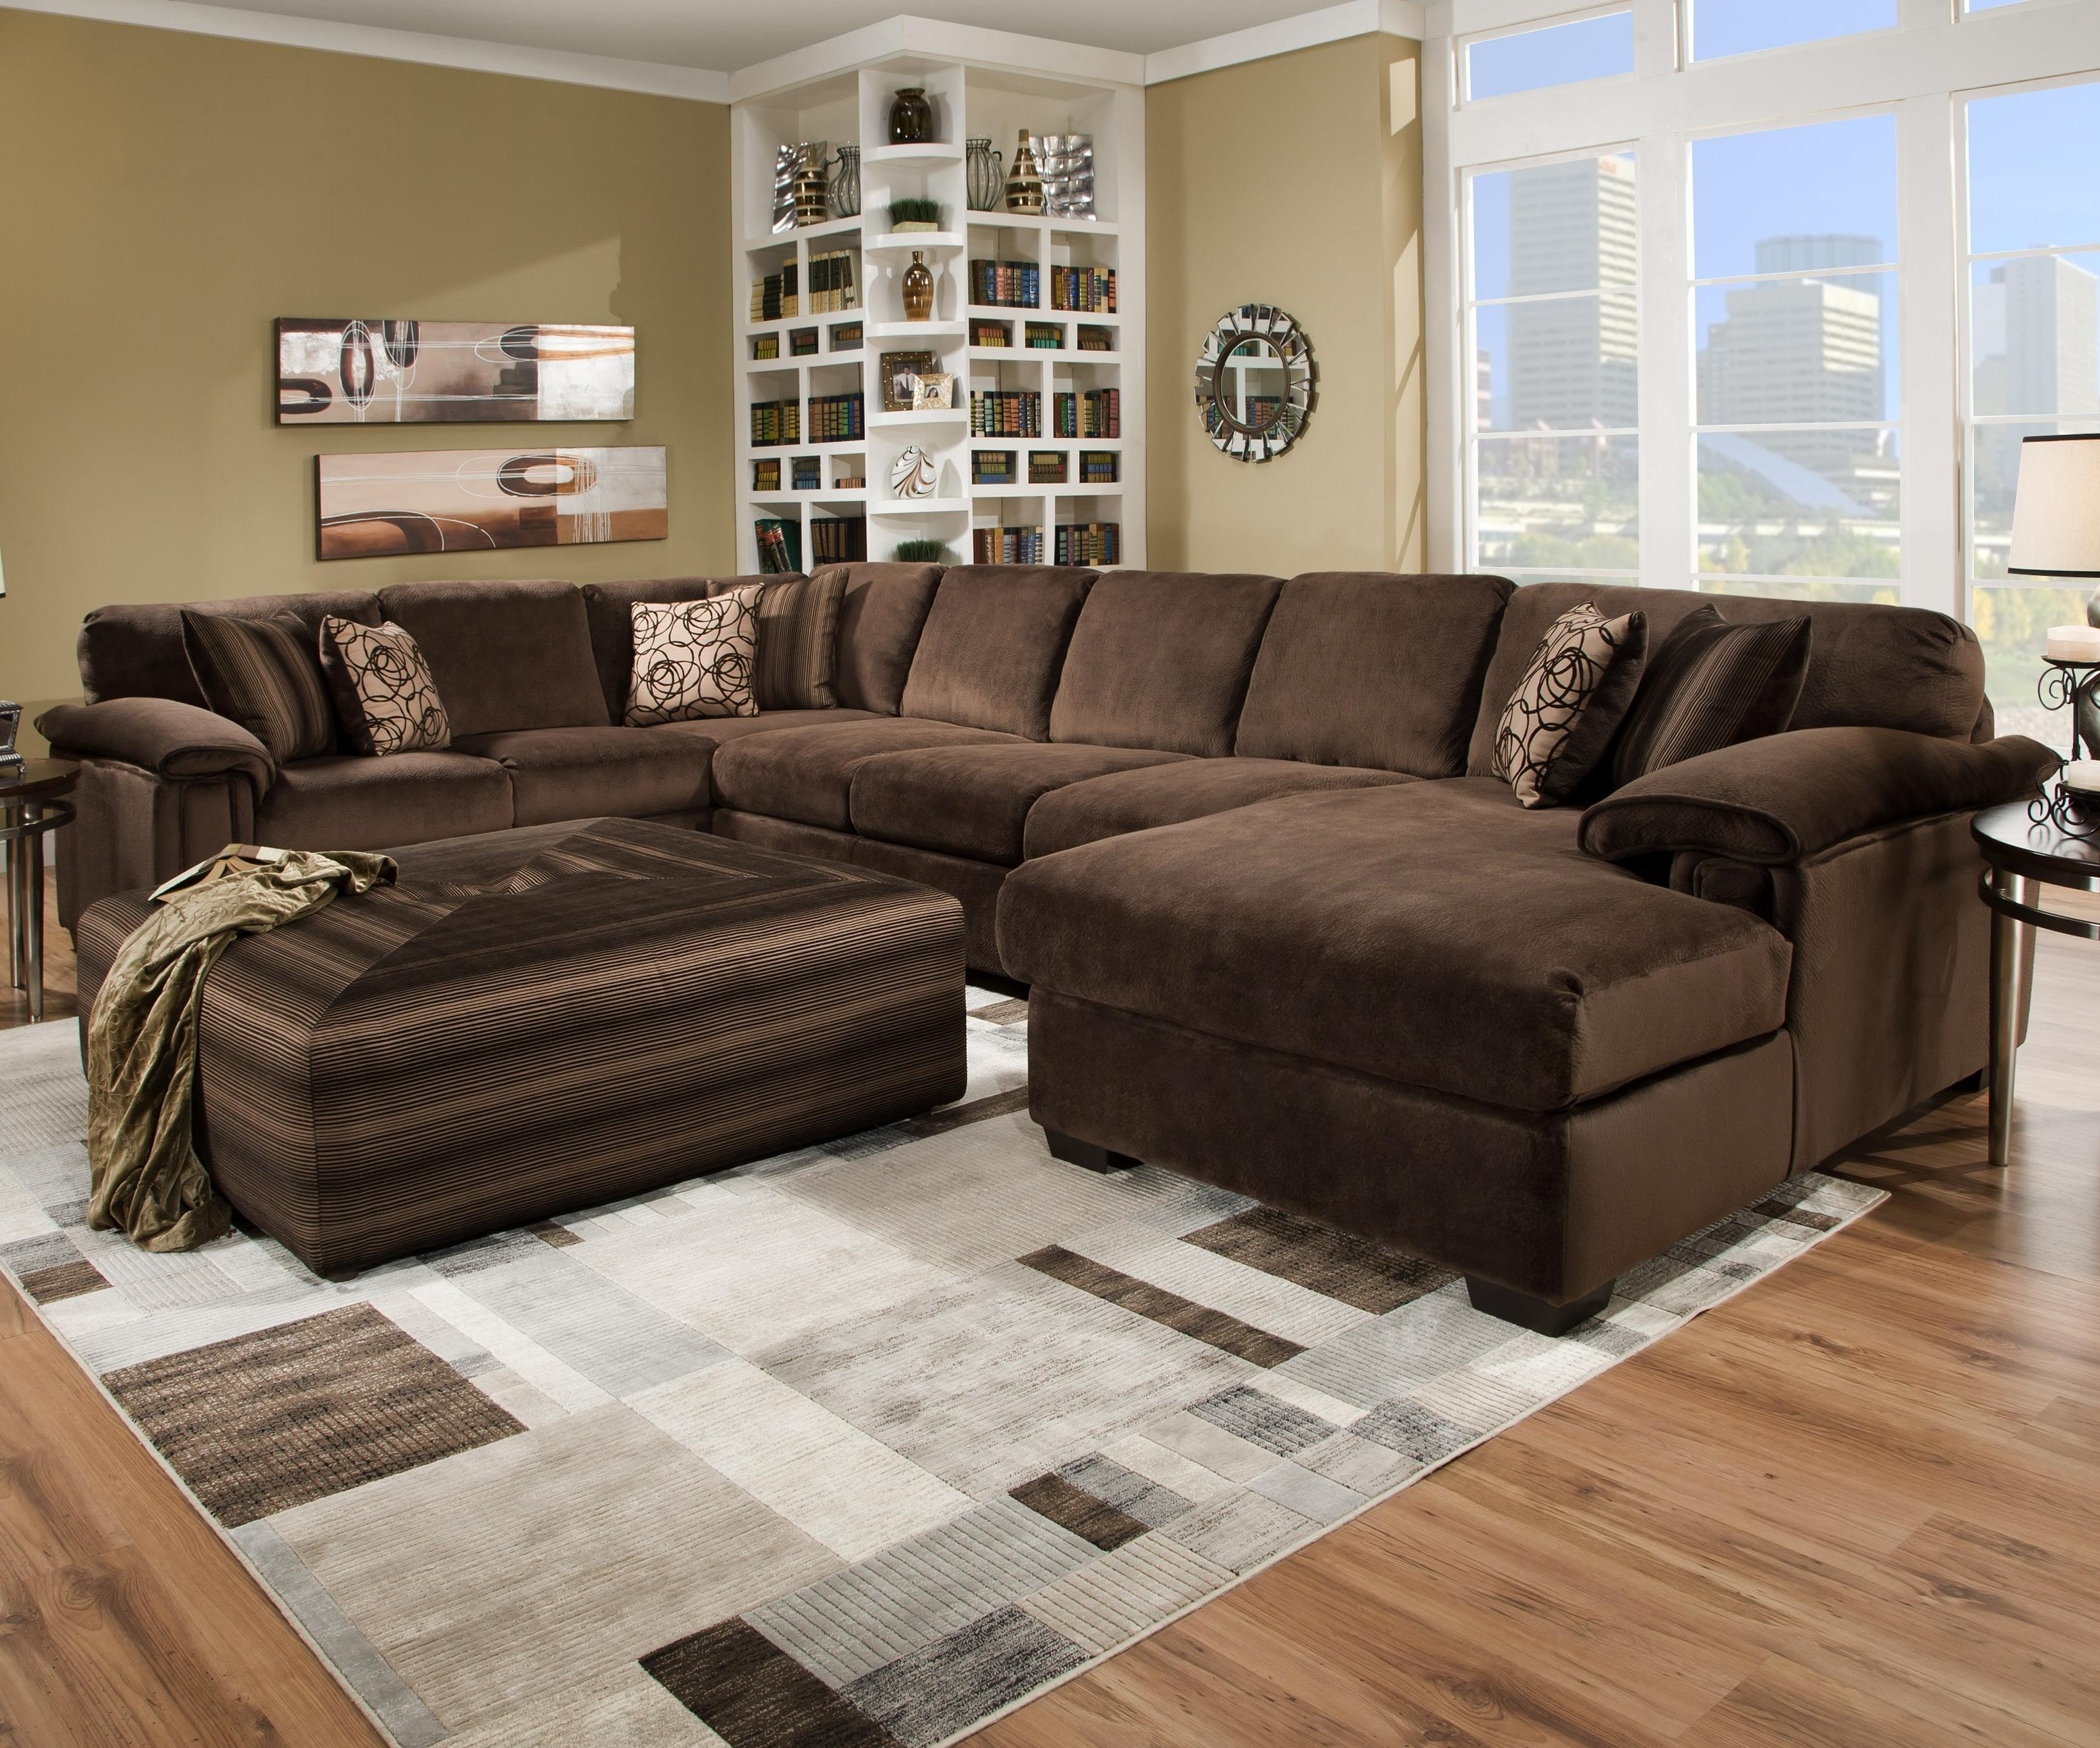 Popular Extra Deep Couches Living Room Furniture Ideas Also Comfy Design With Comfortable Sectional Sofas (View 15 of 20)